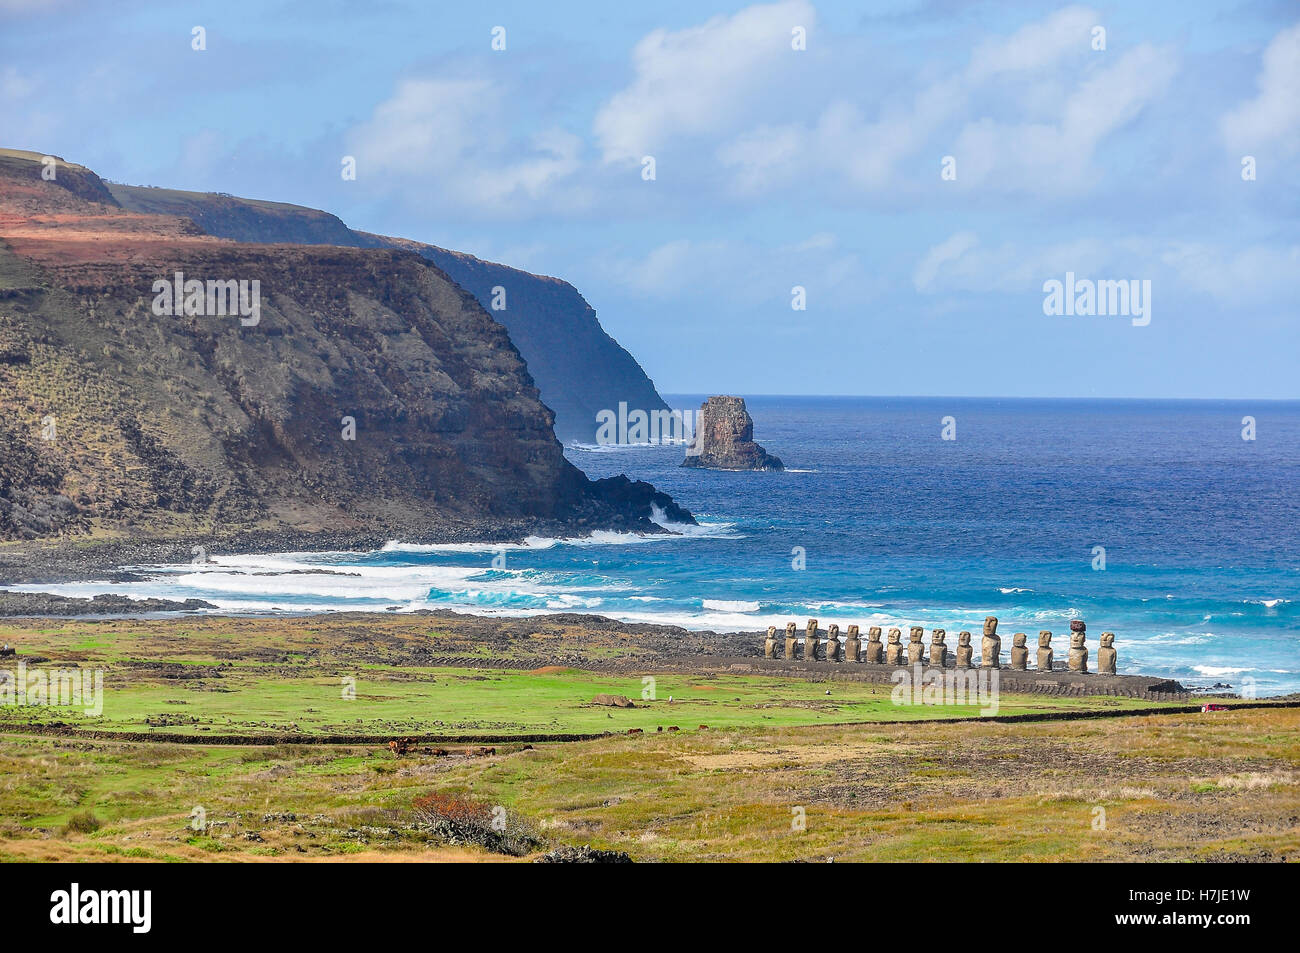 Moai statue ruins in Vaihu site, on the coast of Easter Island, Chile - Stock Image